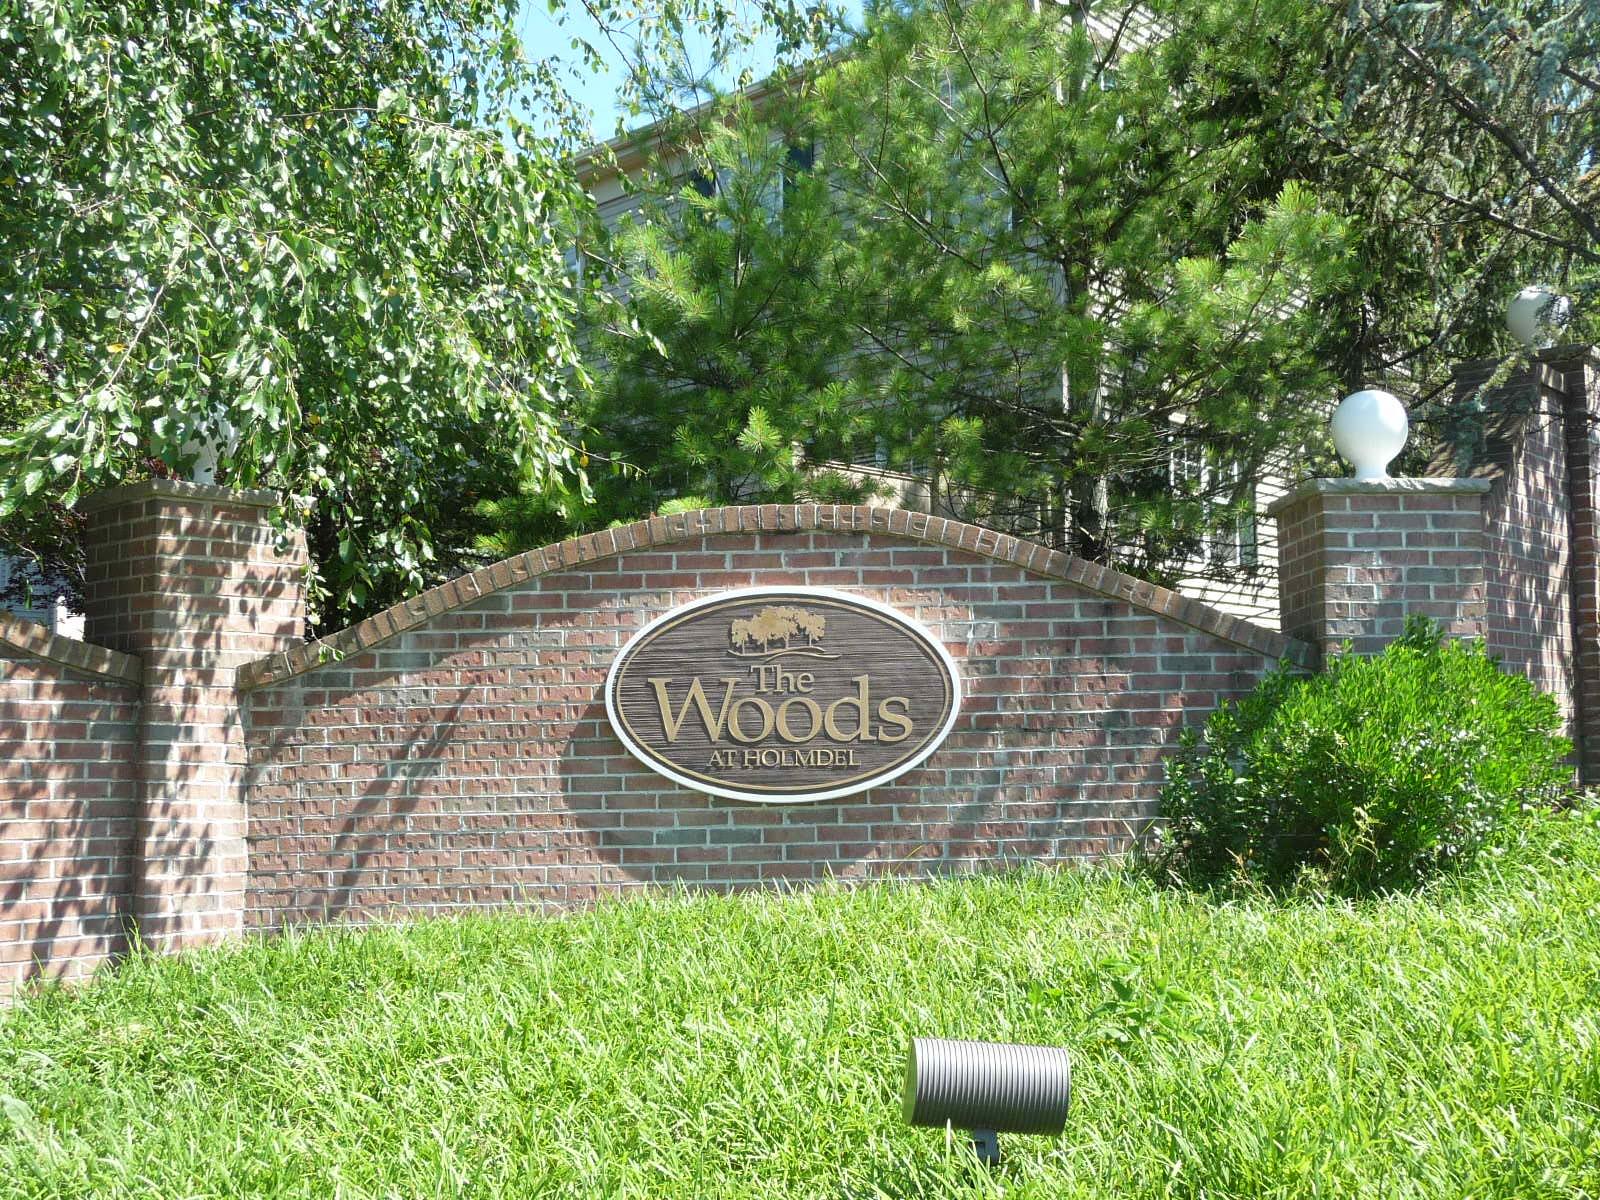 The Woods at Holmdel is an upscale townhouse community off of Laurel Avenue.